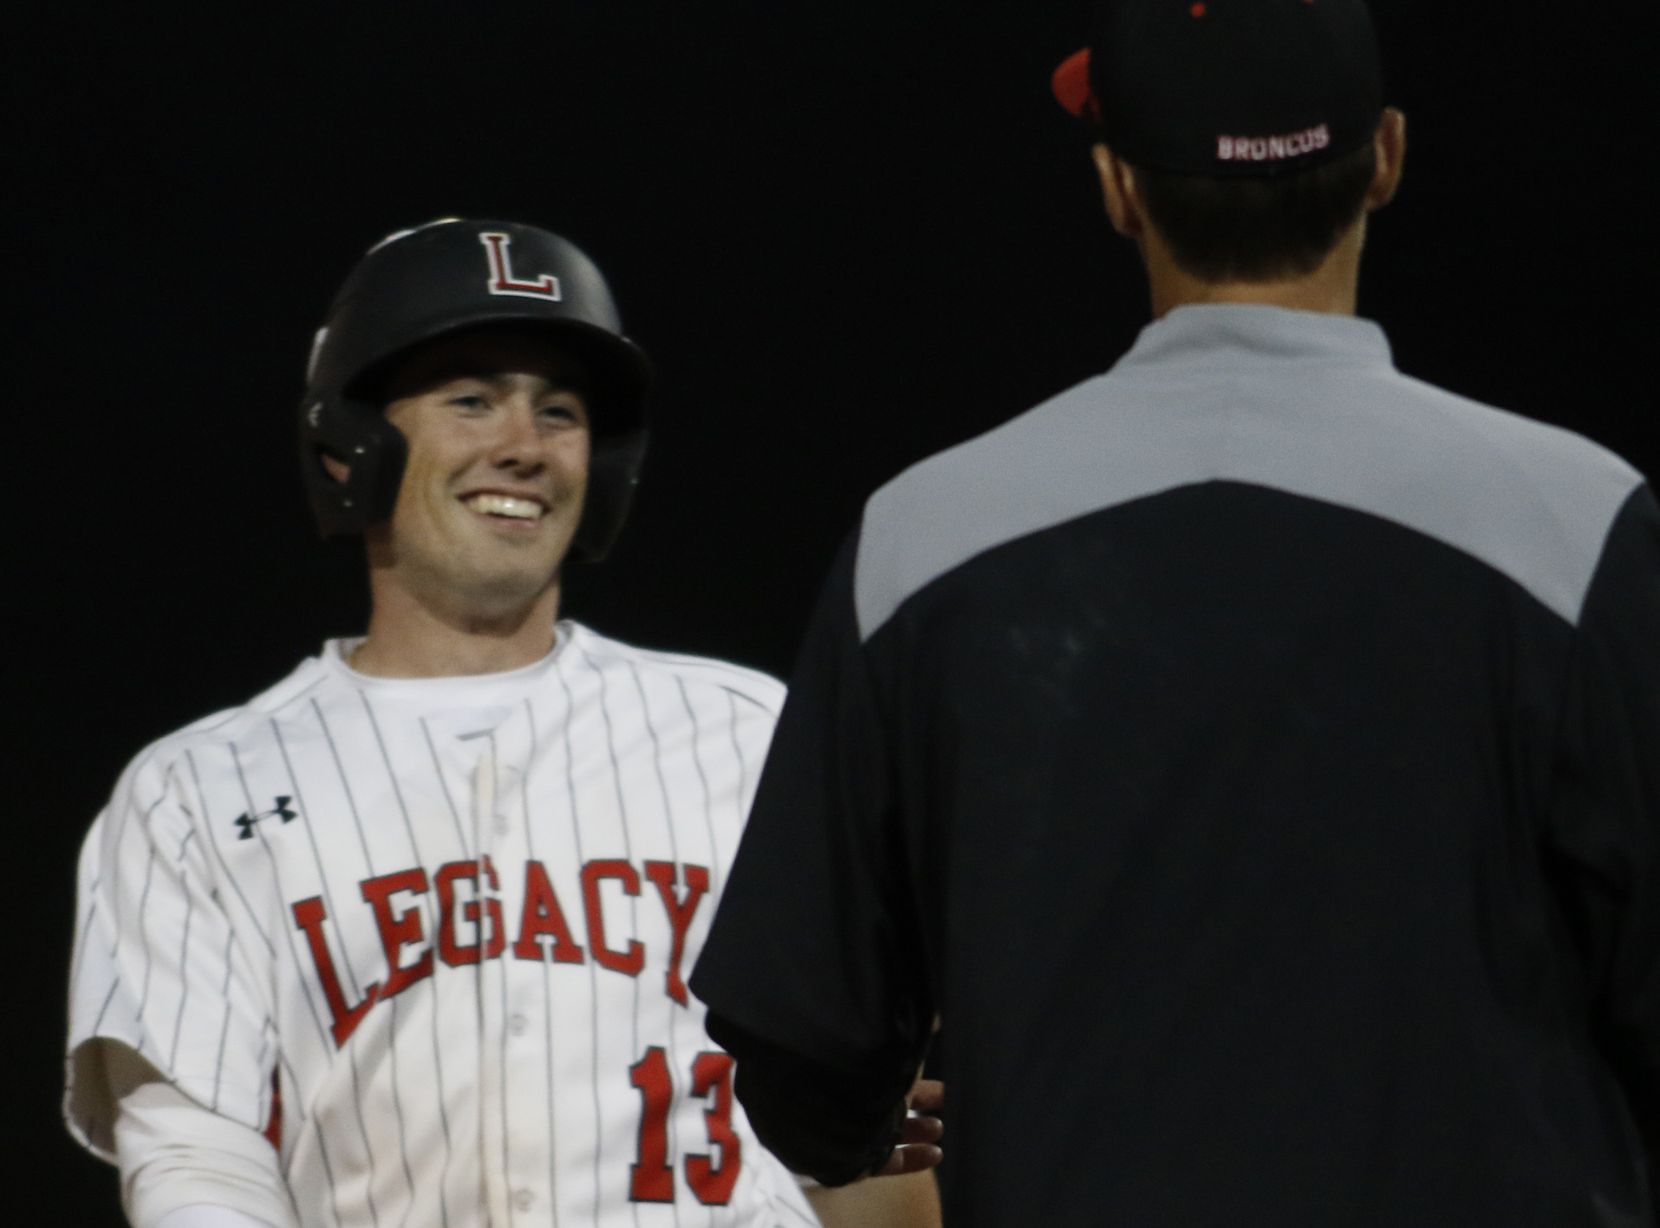 Mansfield Legacy infielder Nathan Rooney (13) was all smiles with head coach Chris McMullen after reaching second base with a double during third inning action against Arlington Sequin. Legacy defeated Sequin 16-0 in 5-innings. The two teams played their baseball game at Mansfield Legacy High School in Mansfield on March 19, 2019. (Steve Hamm/ Special Contributor)